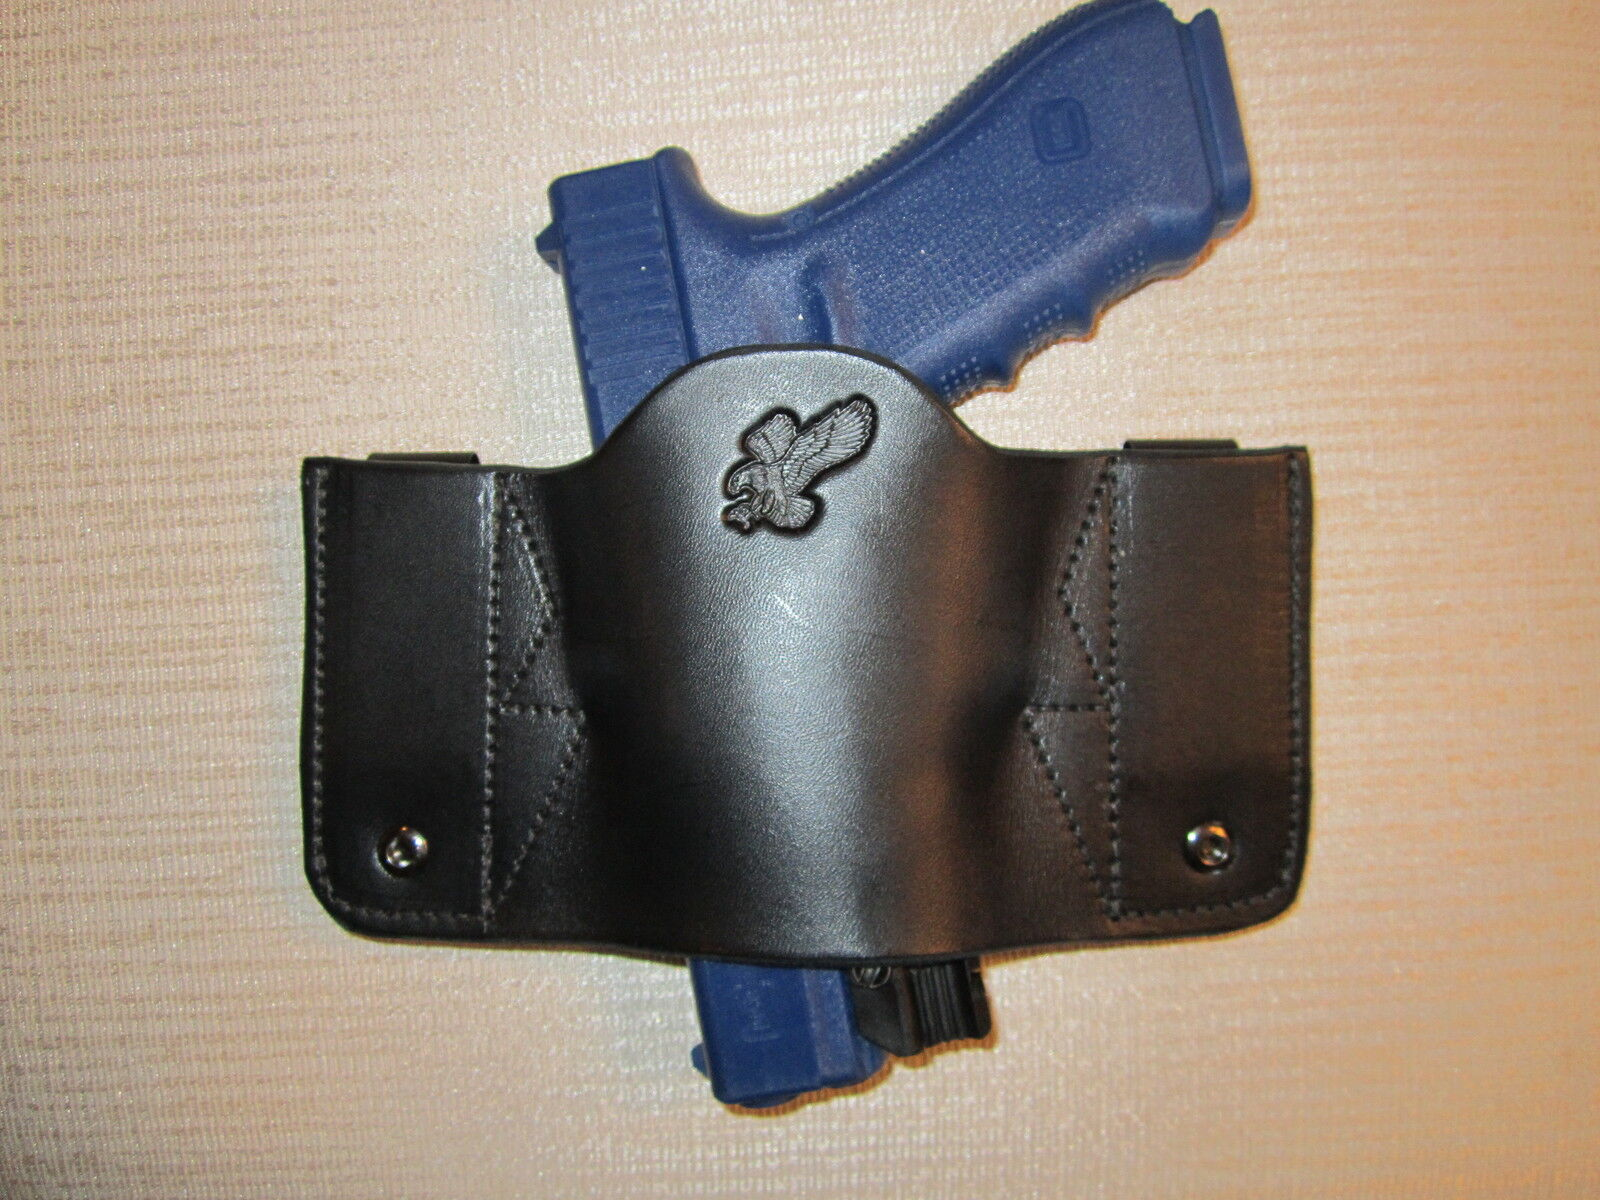 FITS RUGER WITH LASERS,FULLY AMB. & UNIVERSAL FIT, IWB OR OWB, R & L HAND